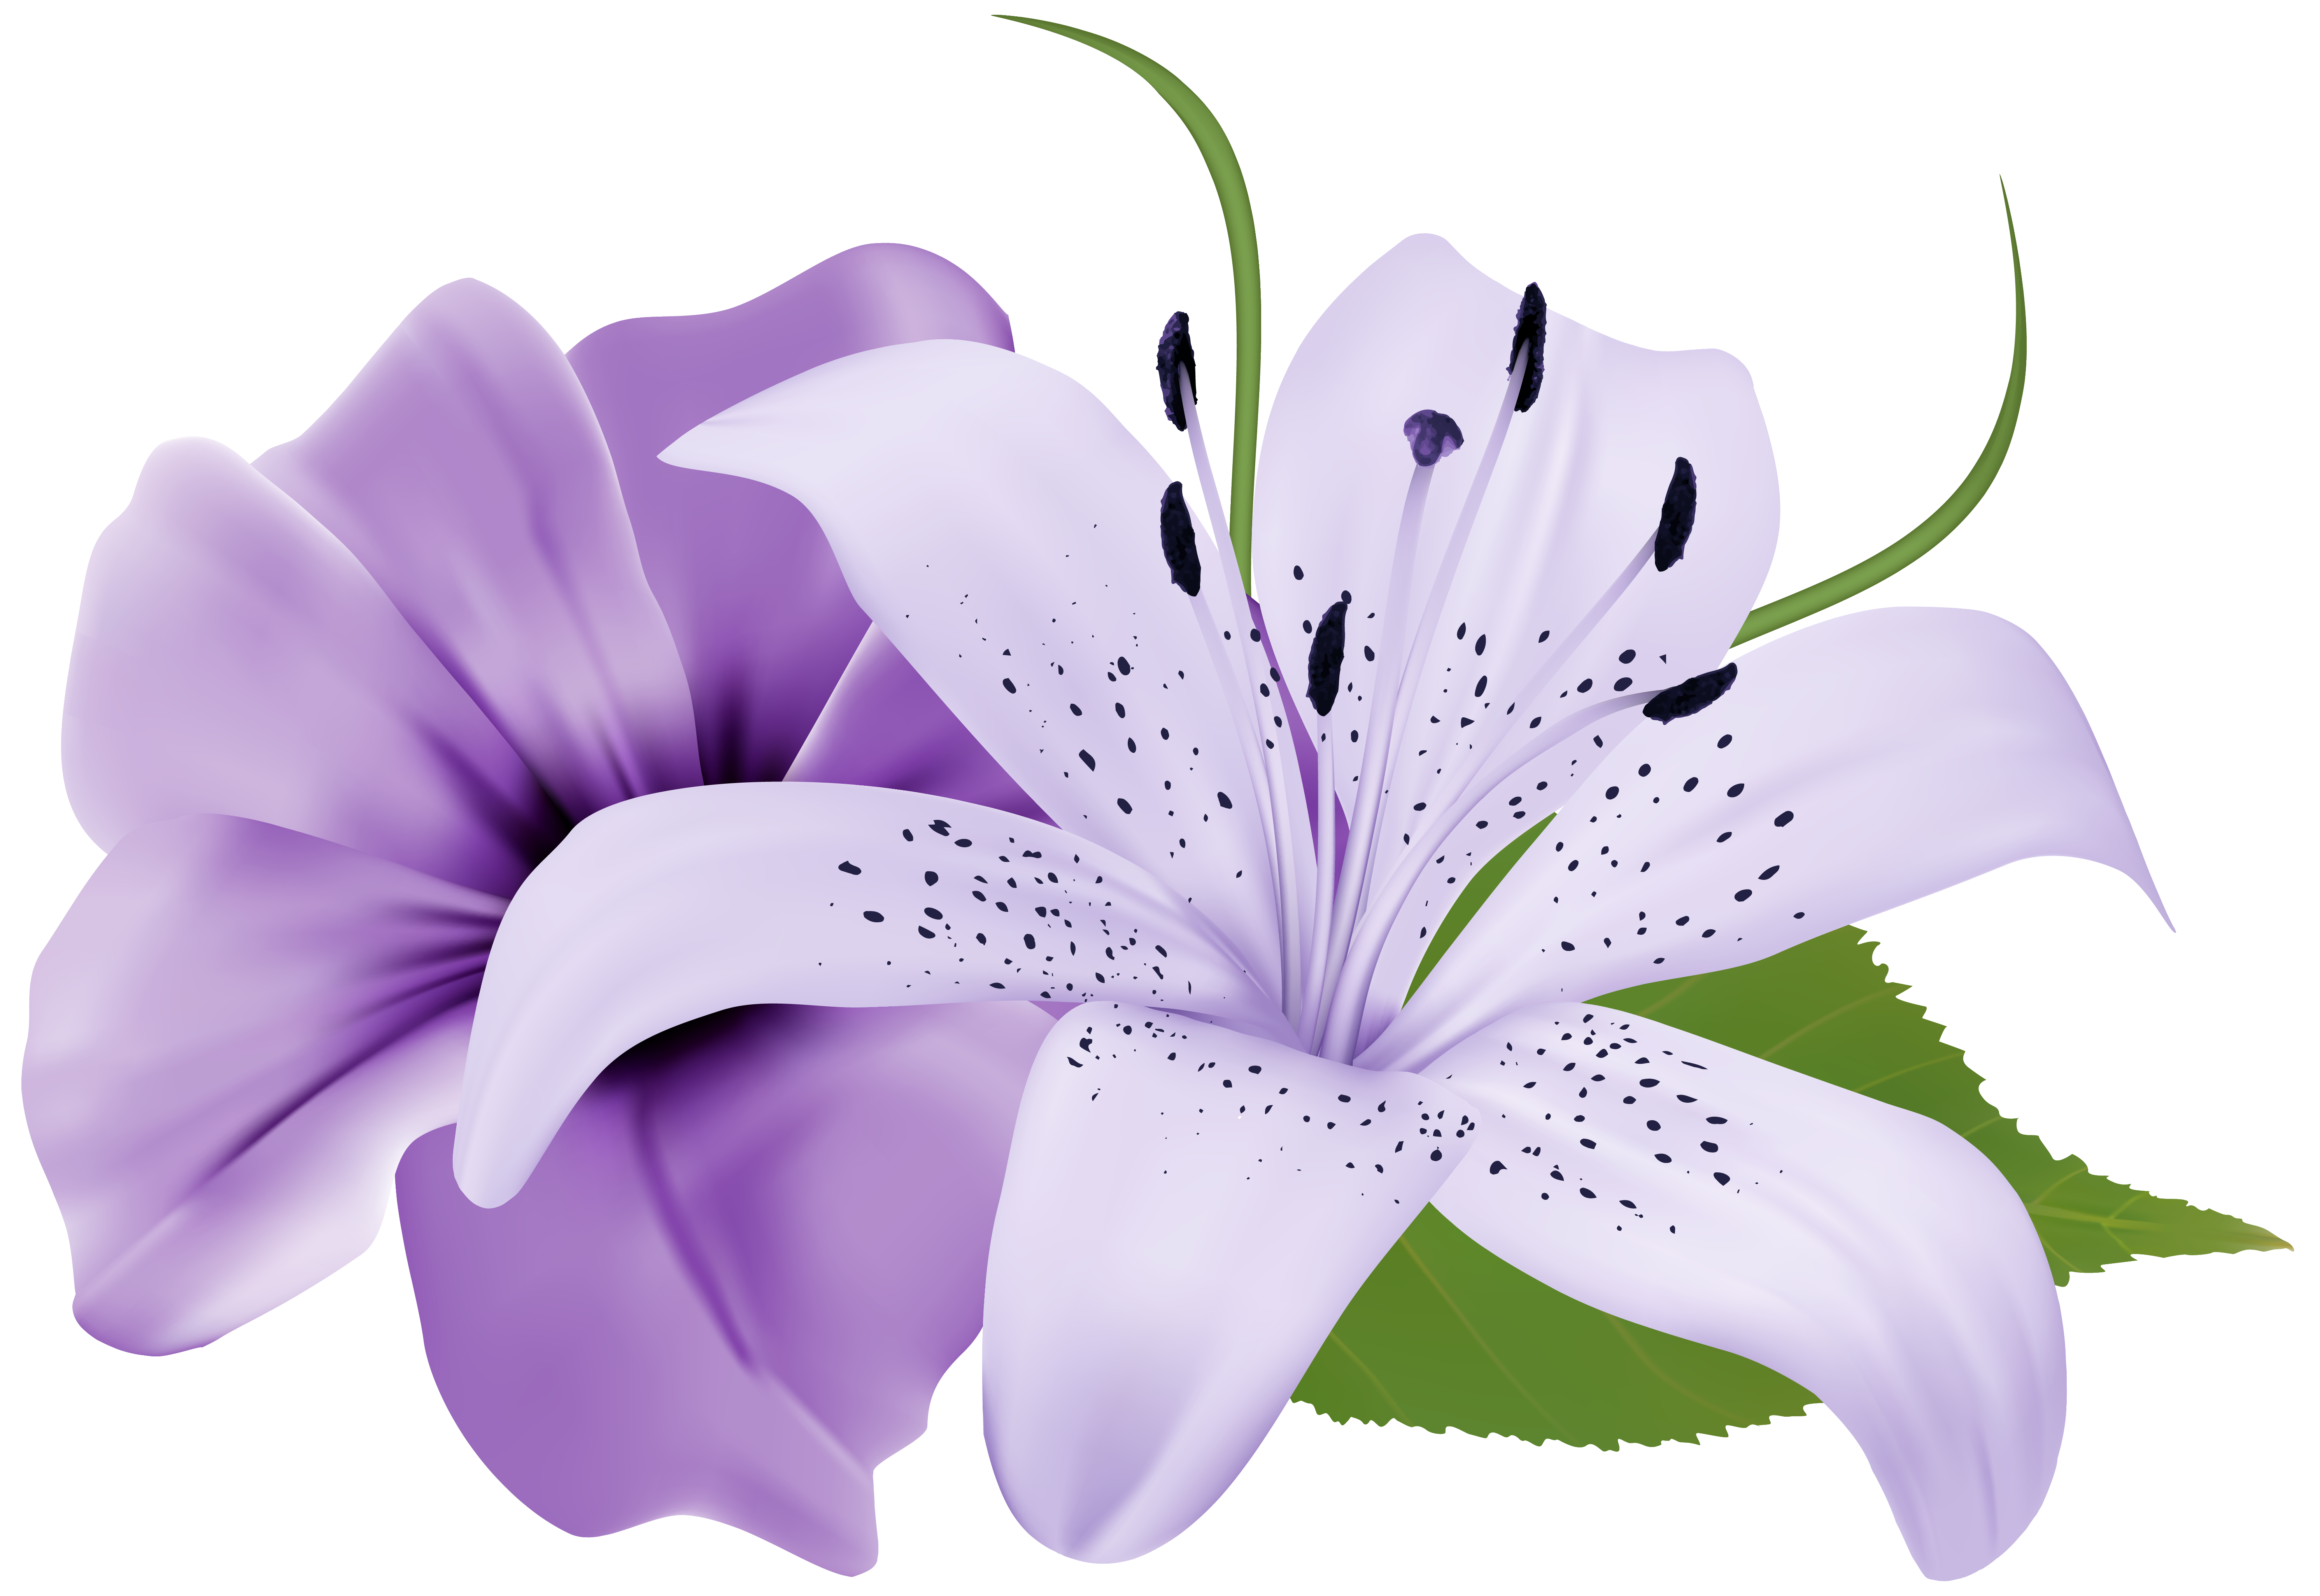 Two exotic png image. Clipart flowers purple